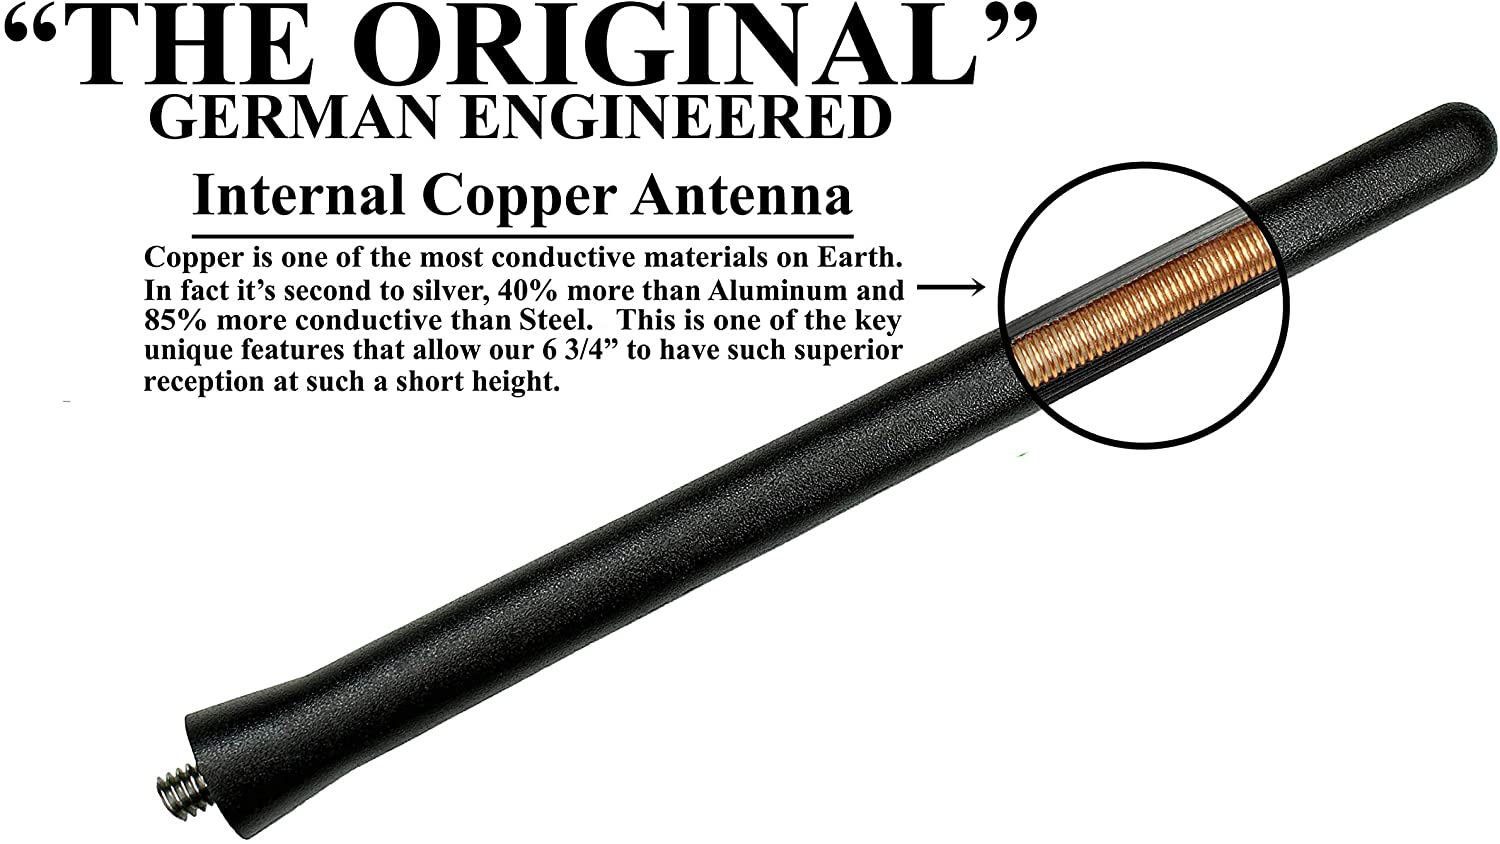 AntennaMastsRus - Car Wash Proof Short Rubber Antenna Premium Reception Internal Copper Coil German Engineered 2015-2020 The Original 6 3//4 Inch is Compatible with Chevrolet Colorado